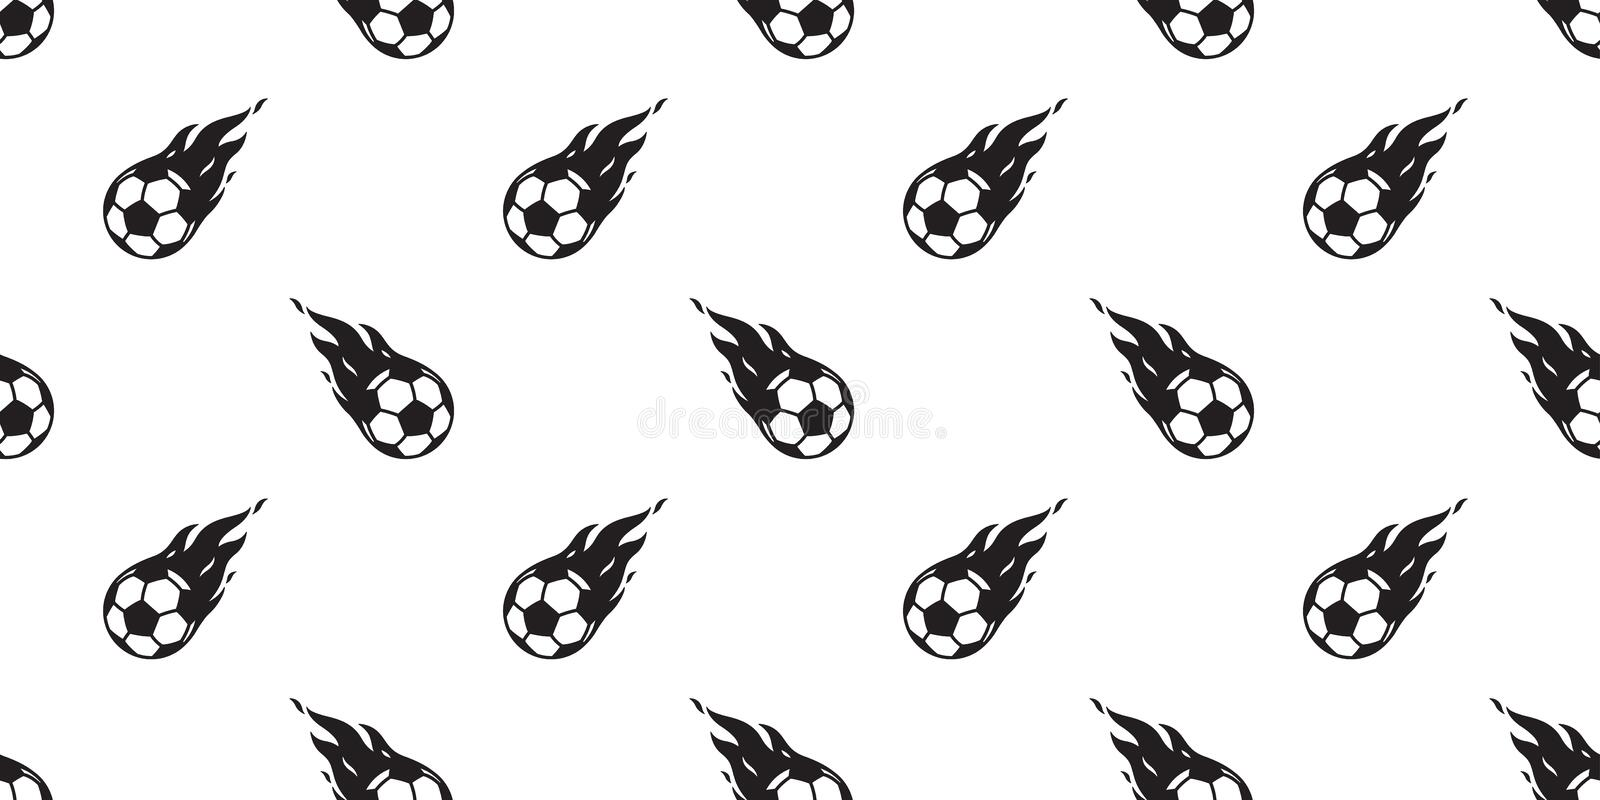 Soccer ball seamless pattern football vector fire tile background scarf isolated repeat wallpaper. Soccer ball seamless pattern football vector fire scarf vector illustration